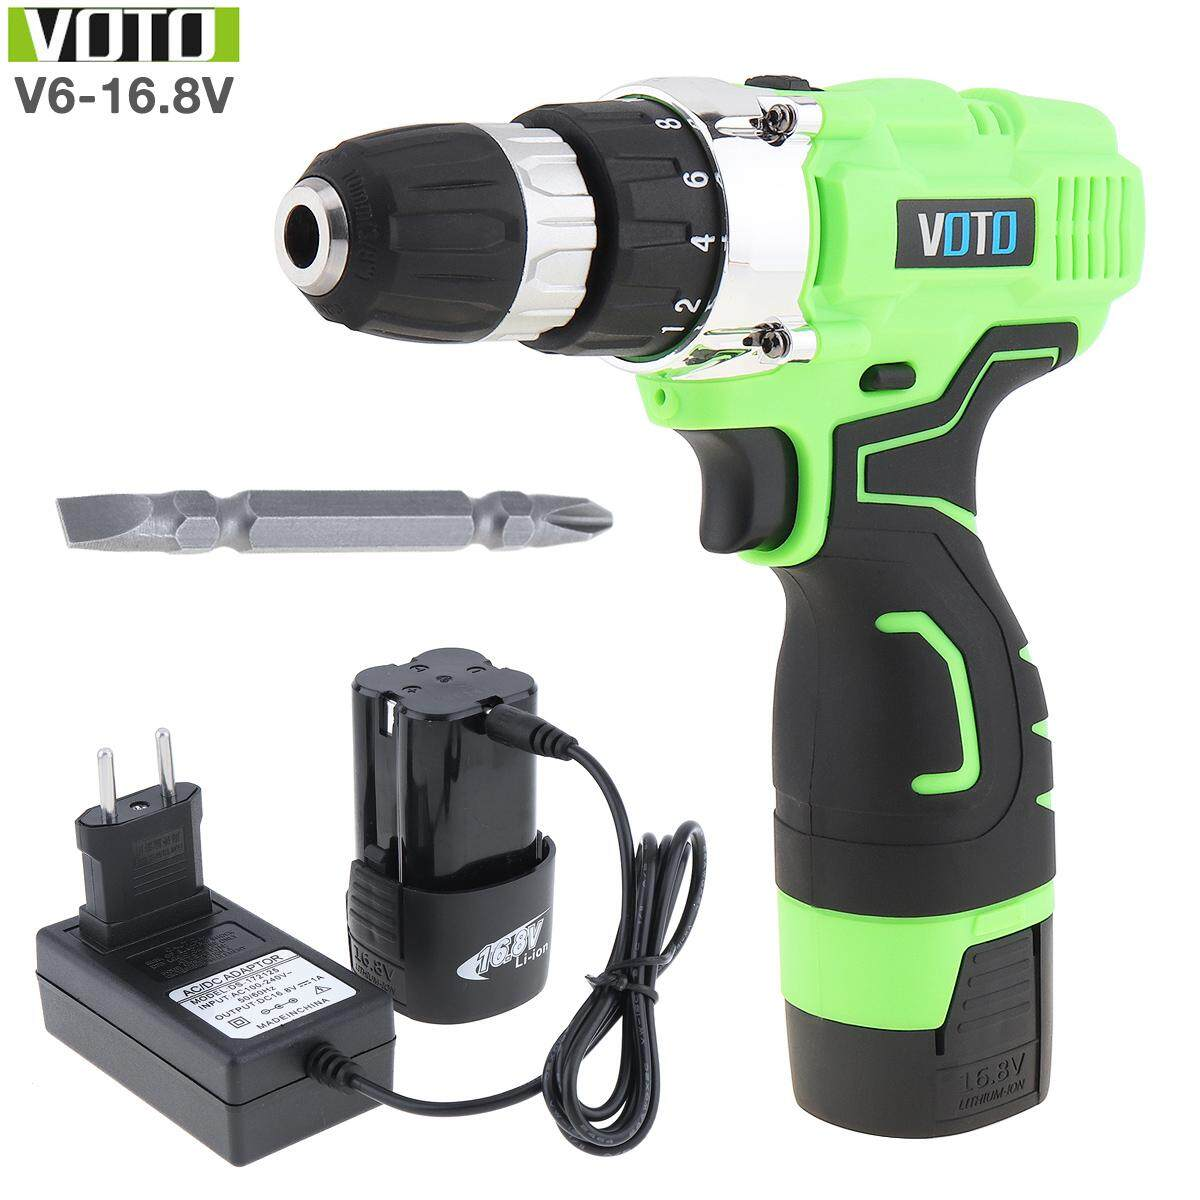 VOTO AC100 - 240V Cordless Max 16.8V Electric Screwdriver with Two-speed Adjustment Button for Handling Screws / Punching